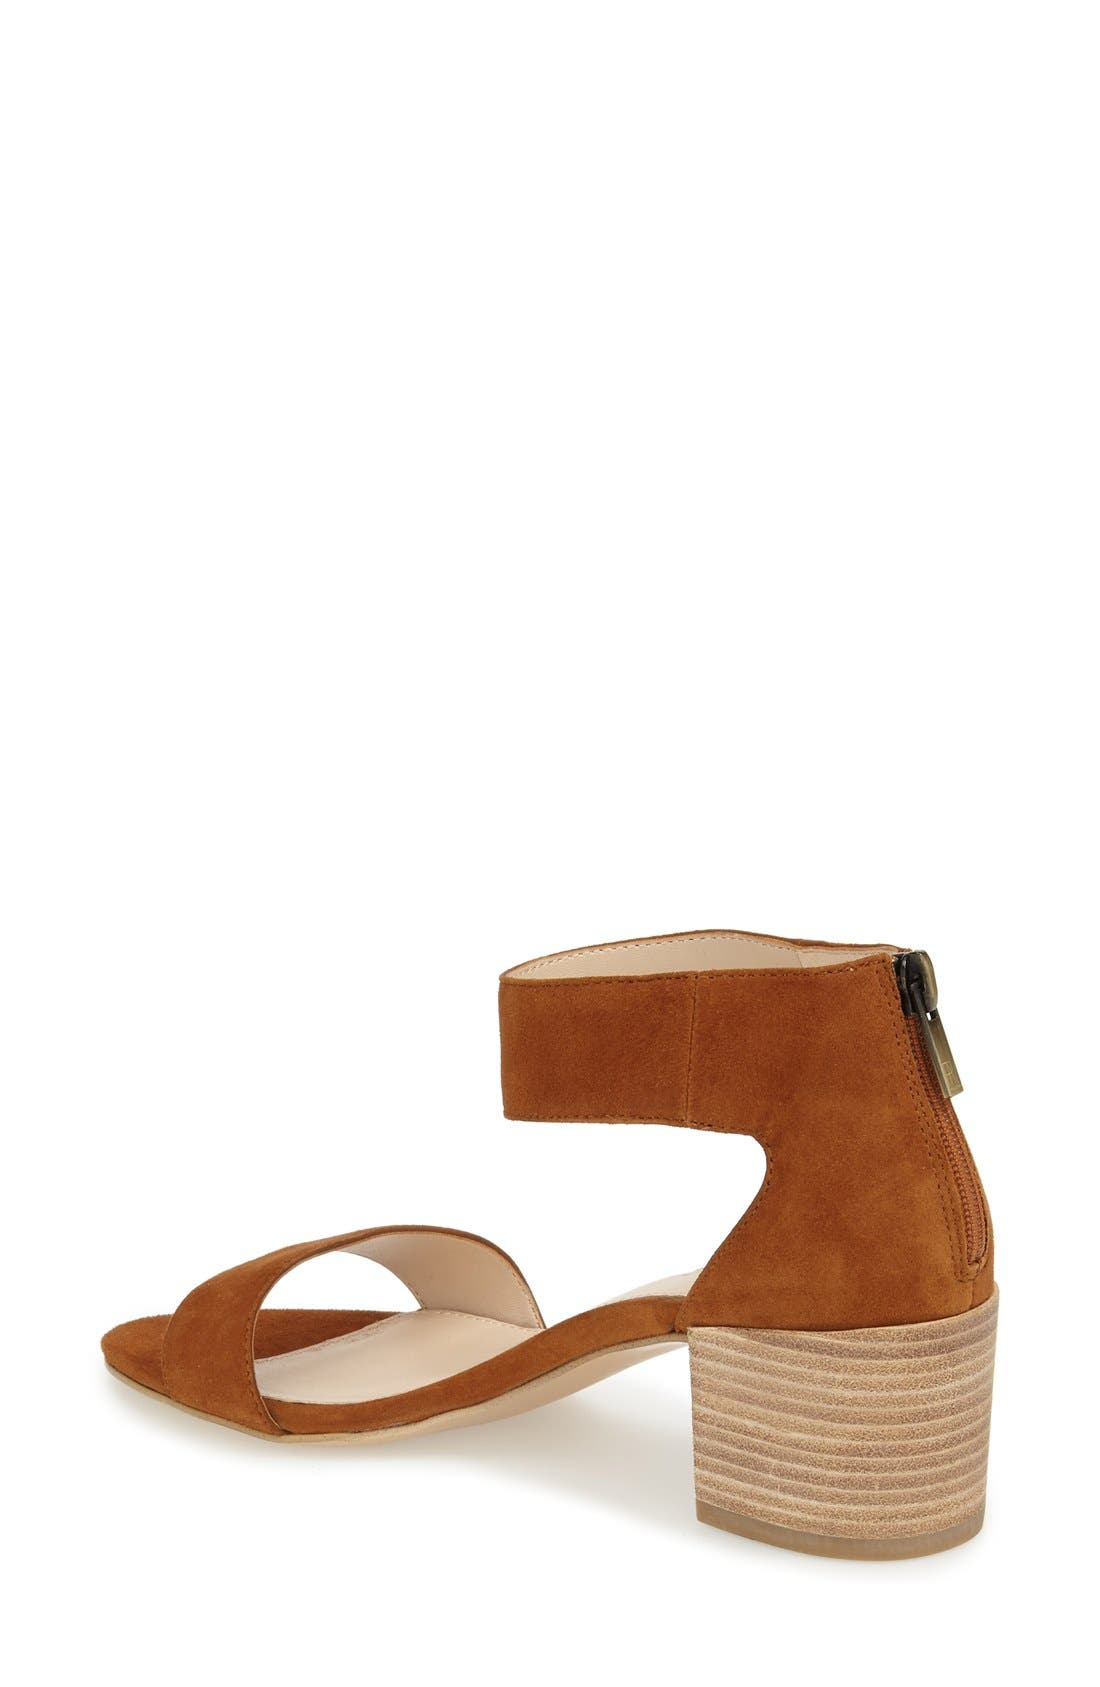 Alternate Image 2  - Pella Moda 'Urban' Block Heel Sandal (Women)